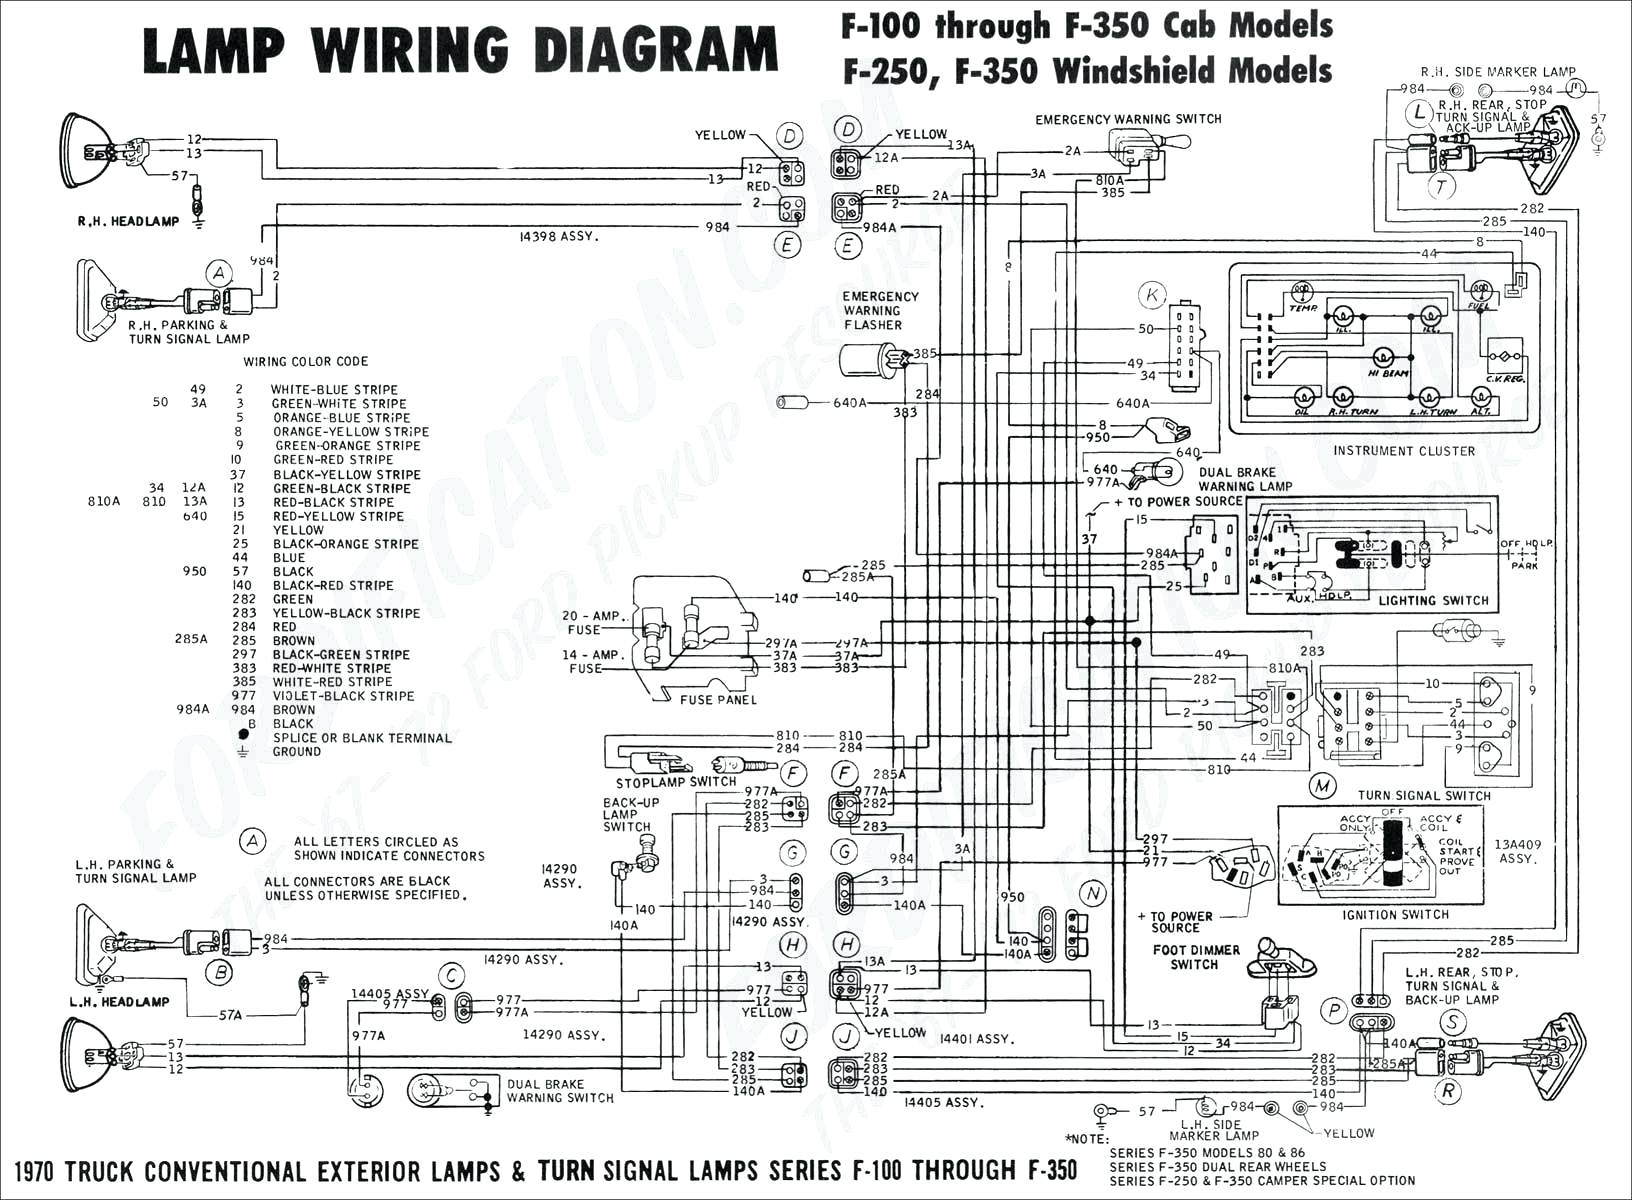 2006 ford super duty trailer wiring - wiring diagram page mass-best-a -  mass-best-a.granballodicomo.it  granballodicomo.it